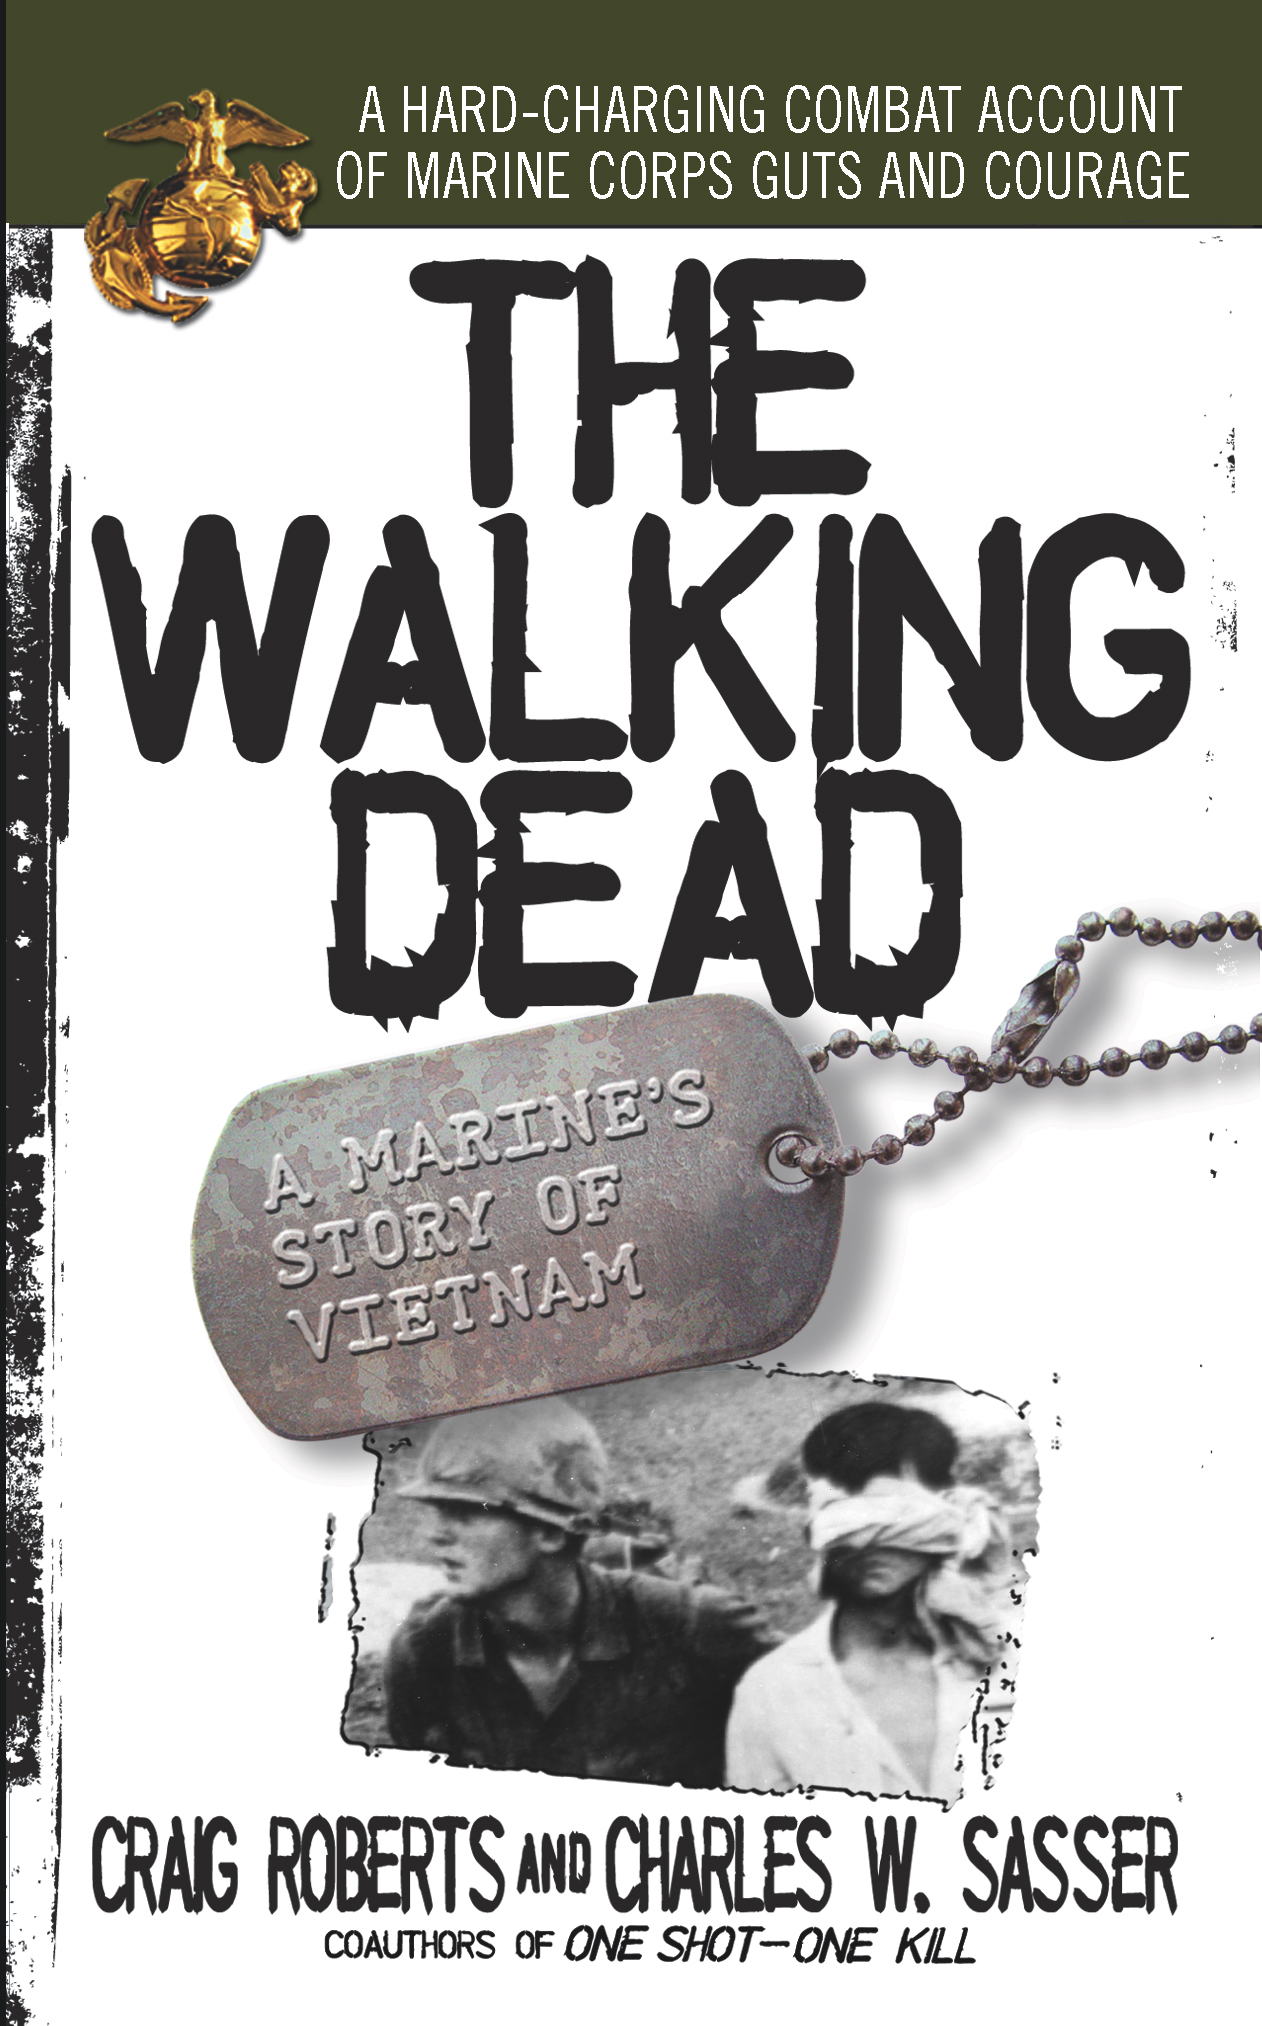 The walking dead book by charles w sasser craig roberts cvr9780671657772 9780671657772 hr fandeluxe Epub